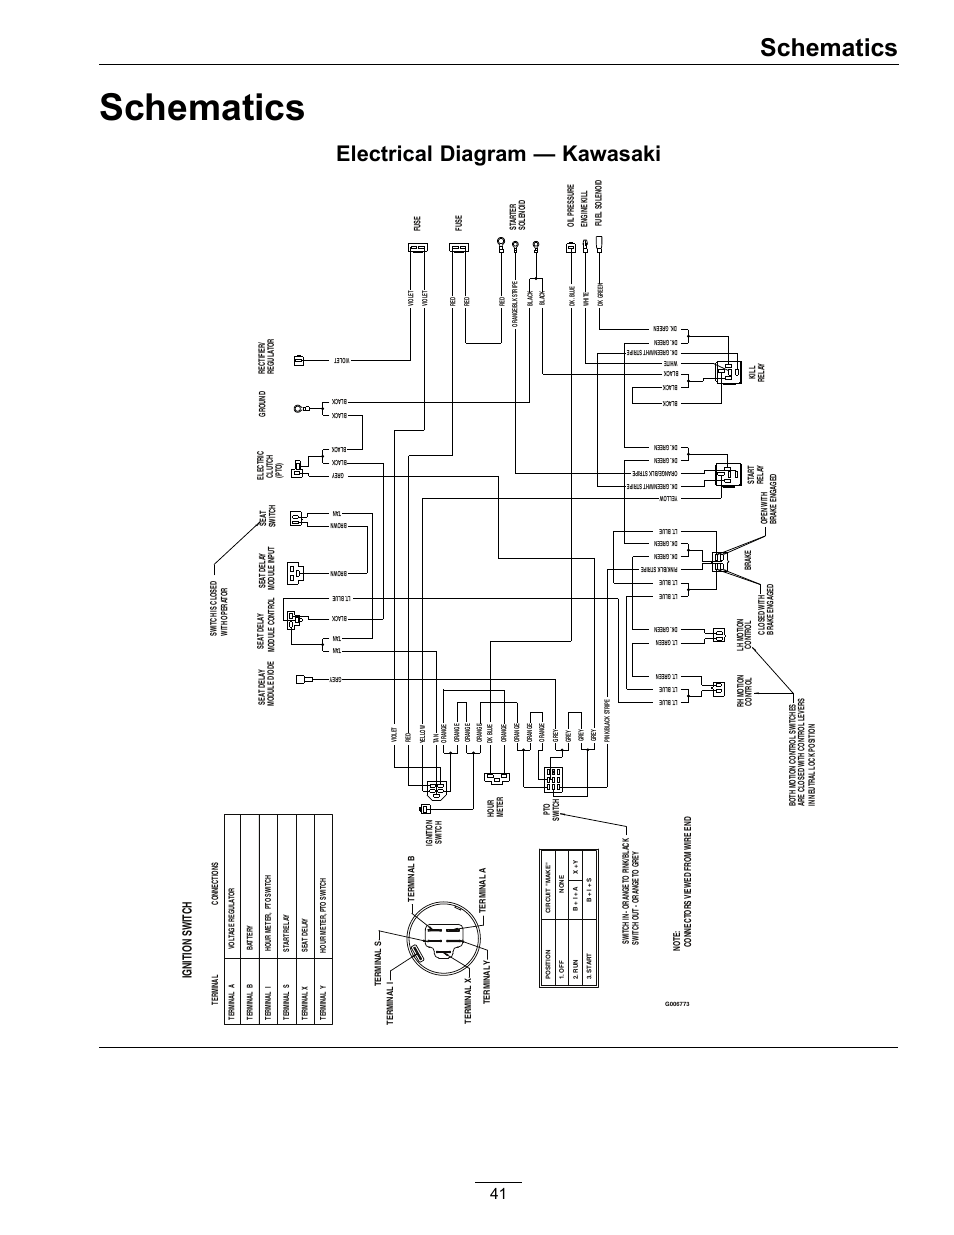 Schematics, Electrical diagram — kawasaki, Ignition switch